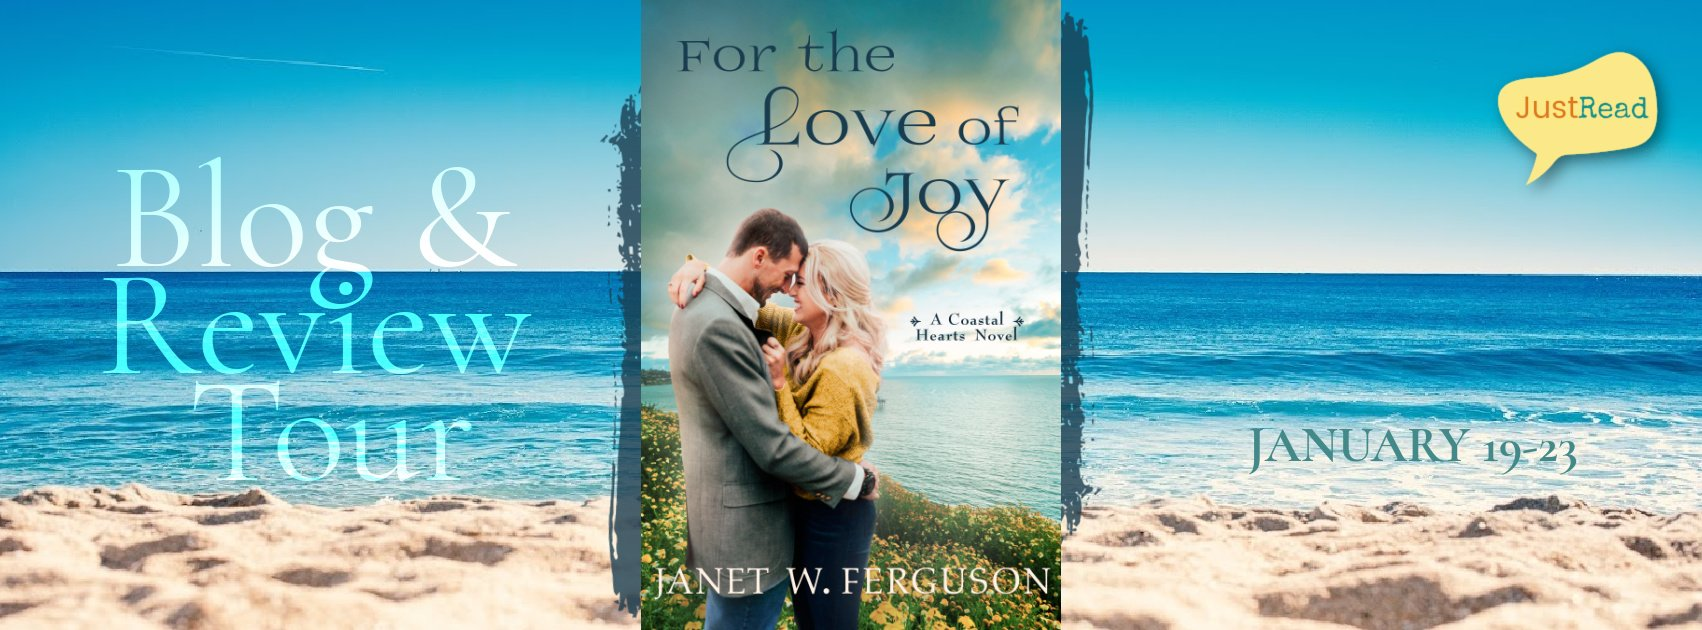 For the Love of Joy JustRead Blog + Review Tour